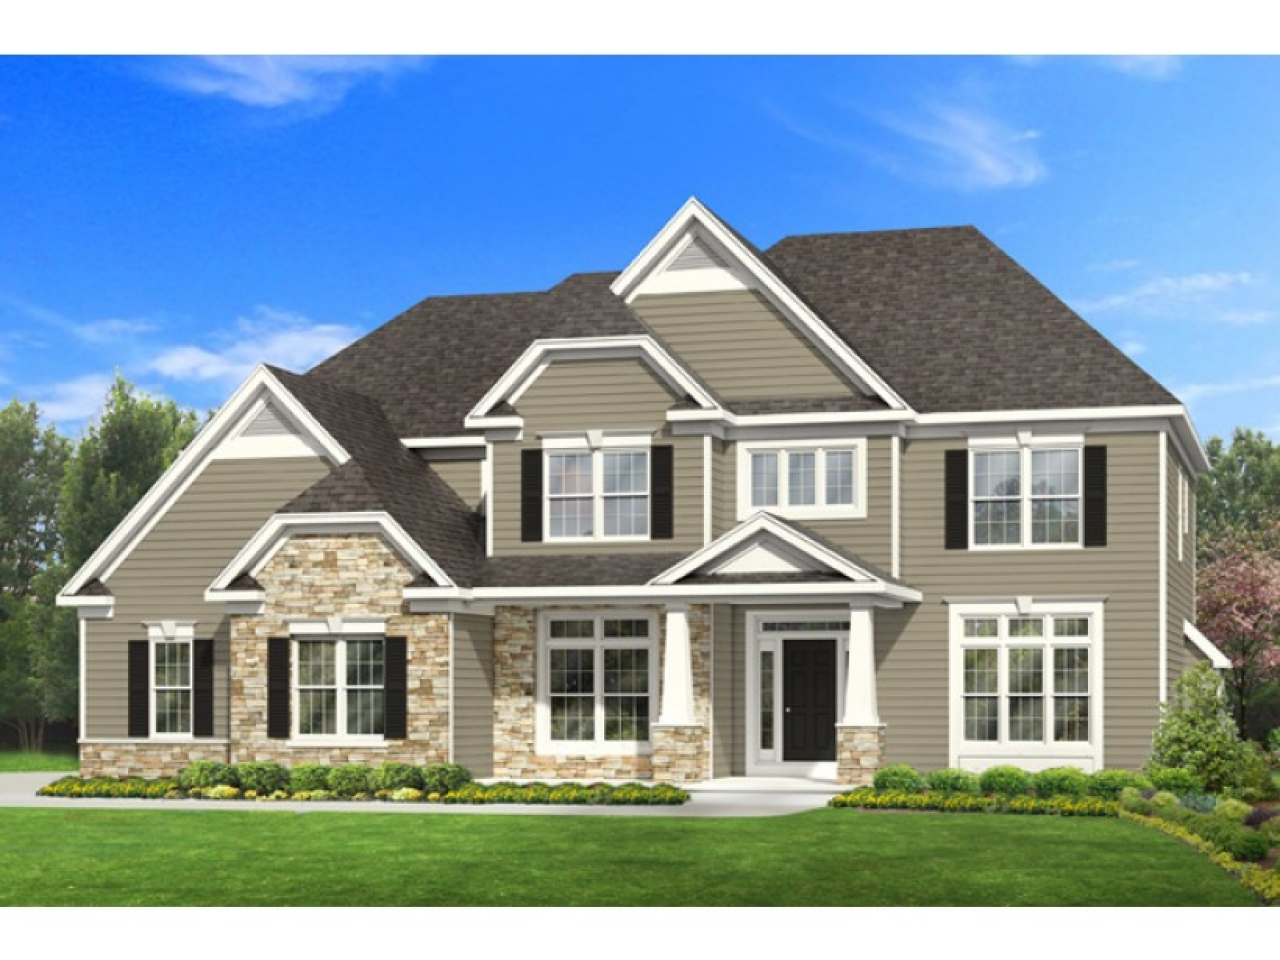 Long Lots Blueprints 3 Bedroom 1 Story 2 Story 4 Bedroom Craftsman House Plans Eplans Craftsman